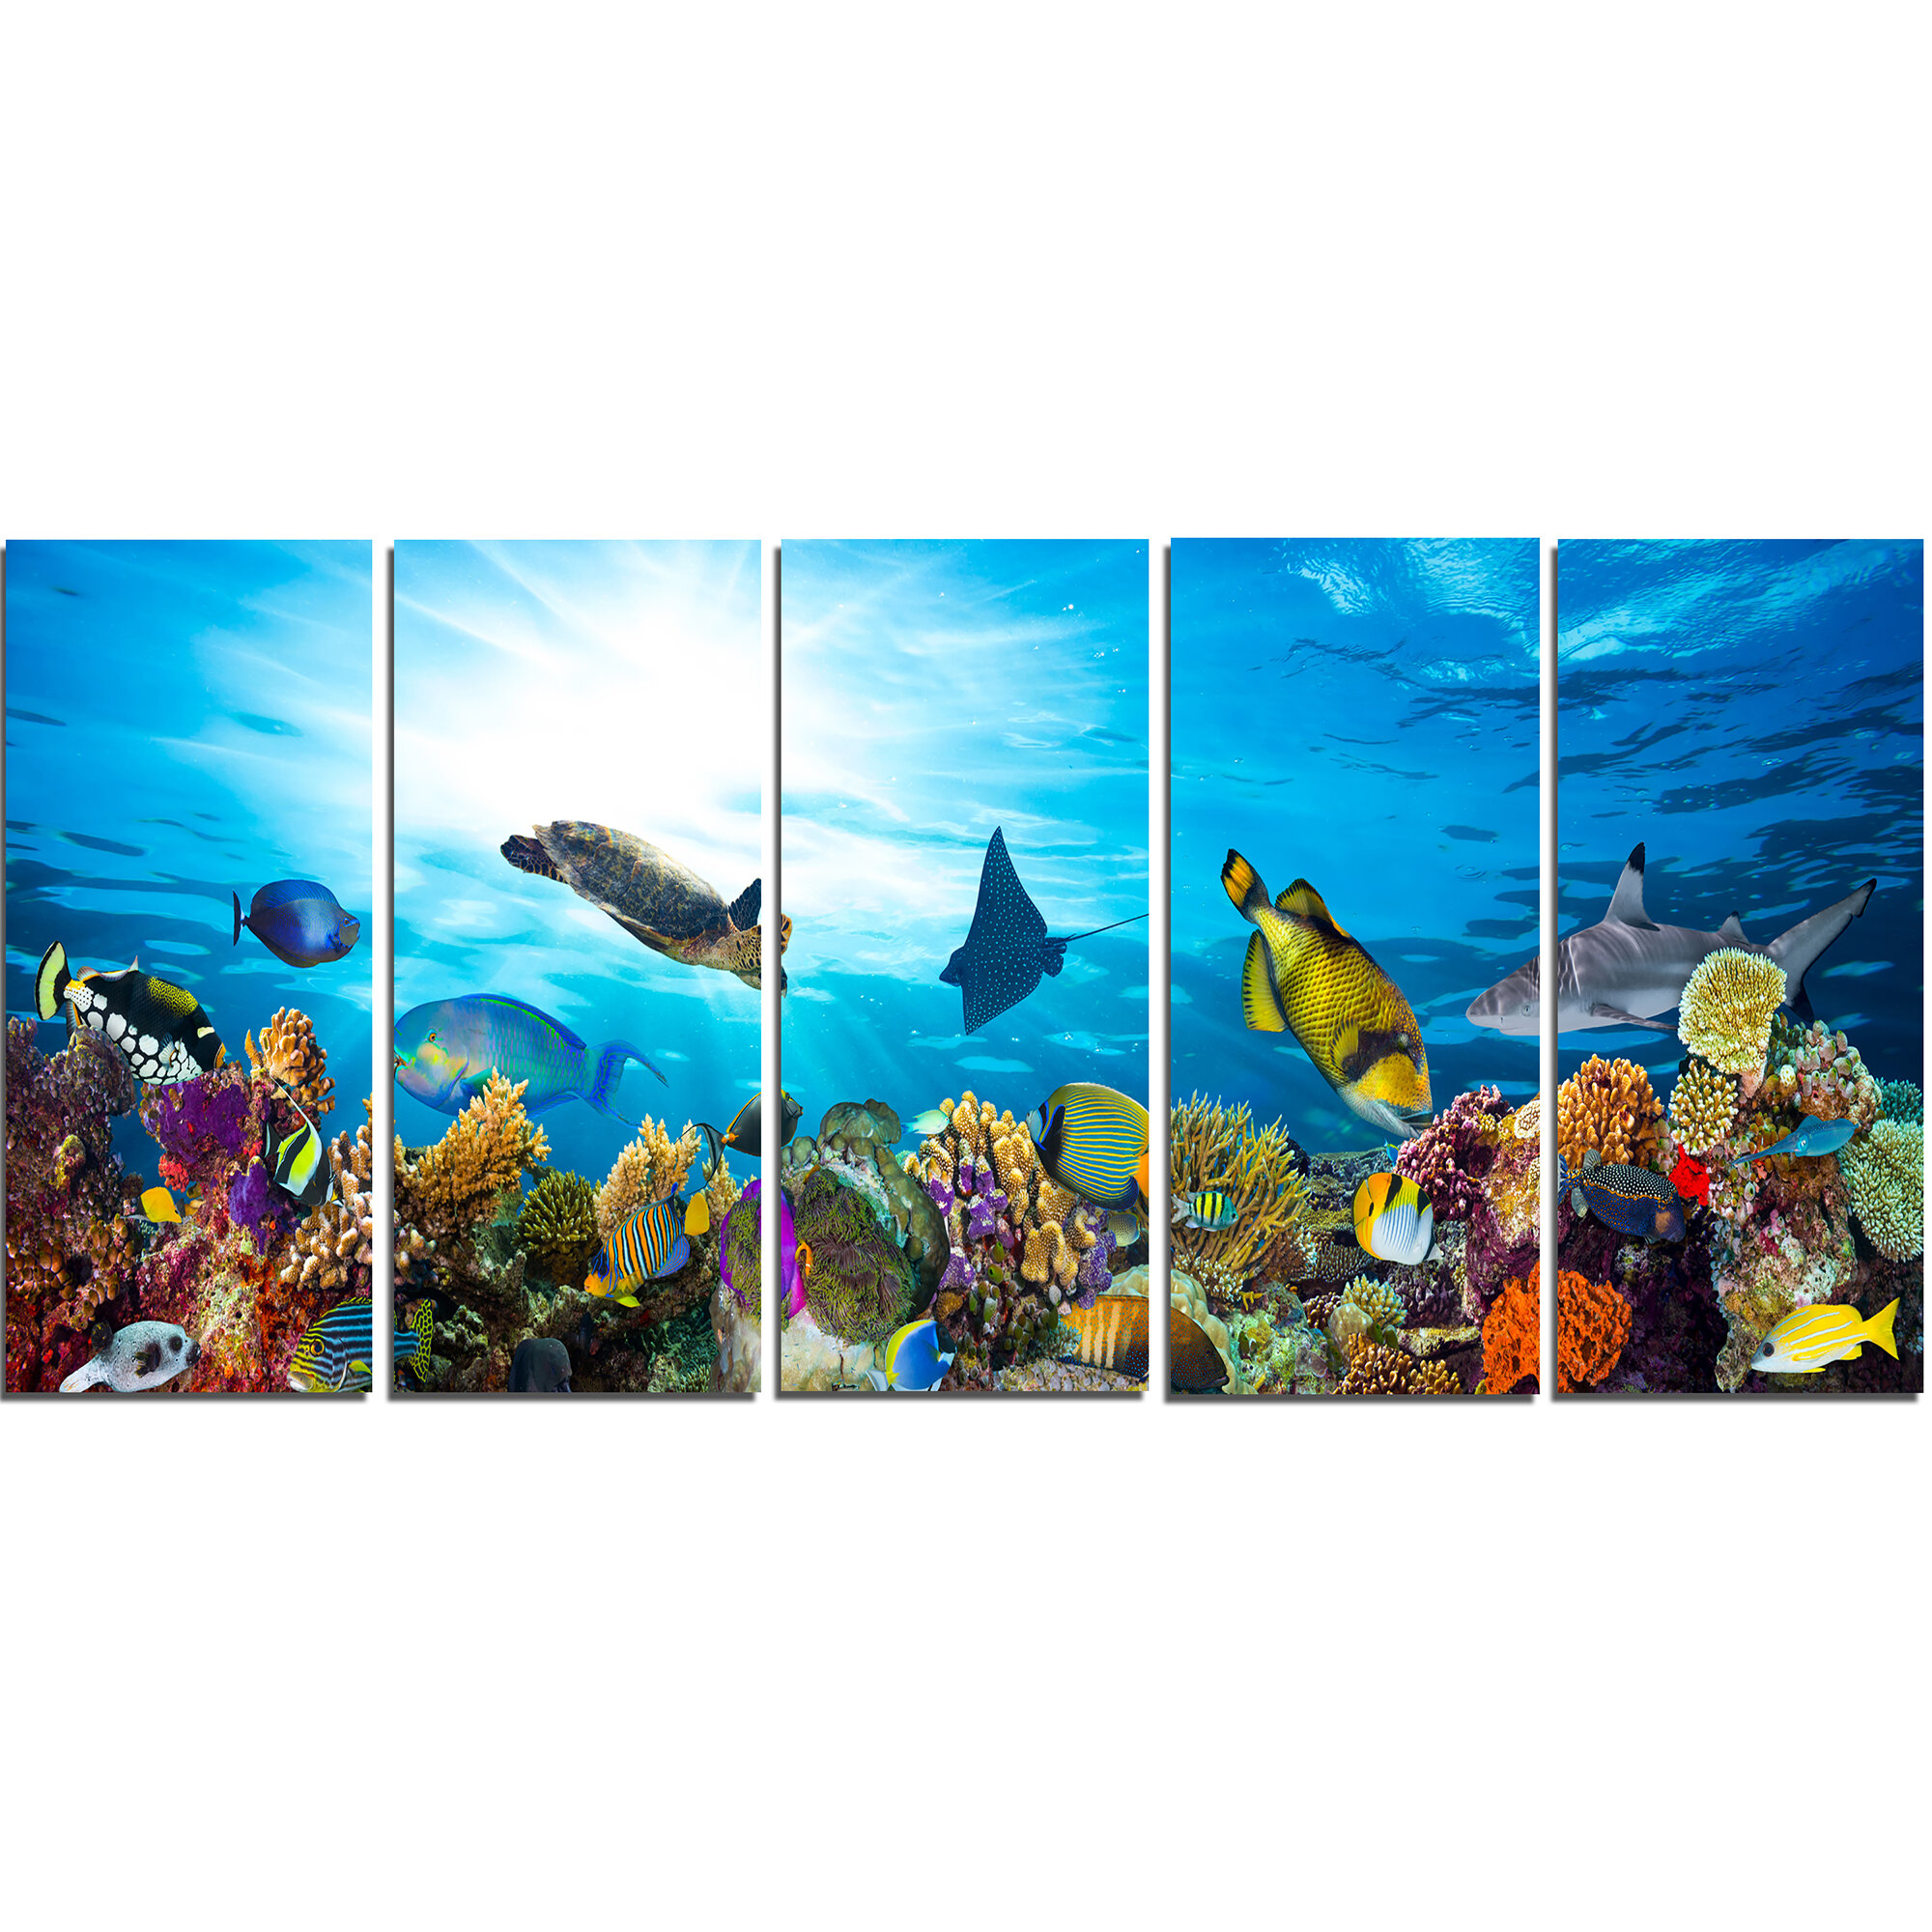 Bay Isle Home Colorful Coral Reef With Fishes 5 Piece Wall Art On Wrapped Canvas Set Reviews Wayfair